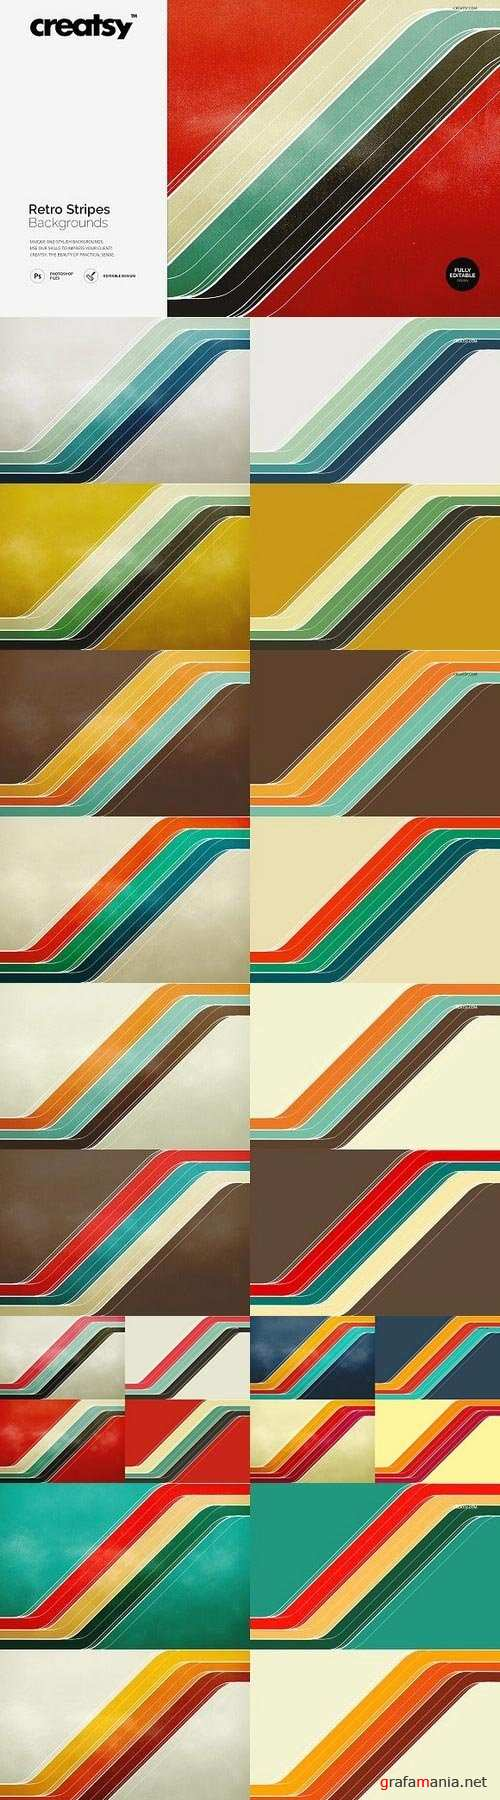 Retro Stripes Backgrounds 1184906